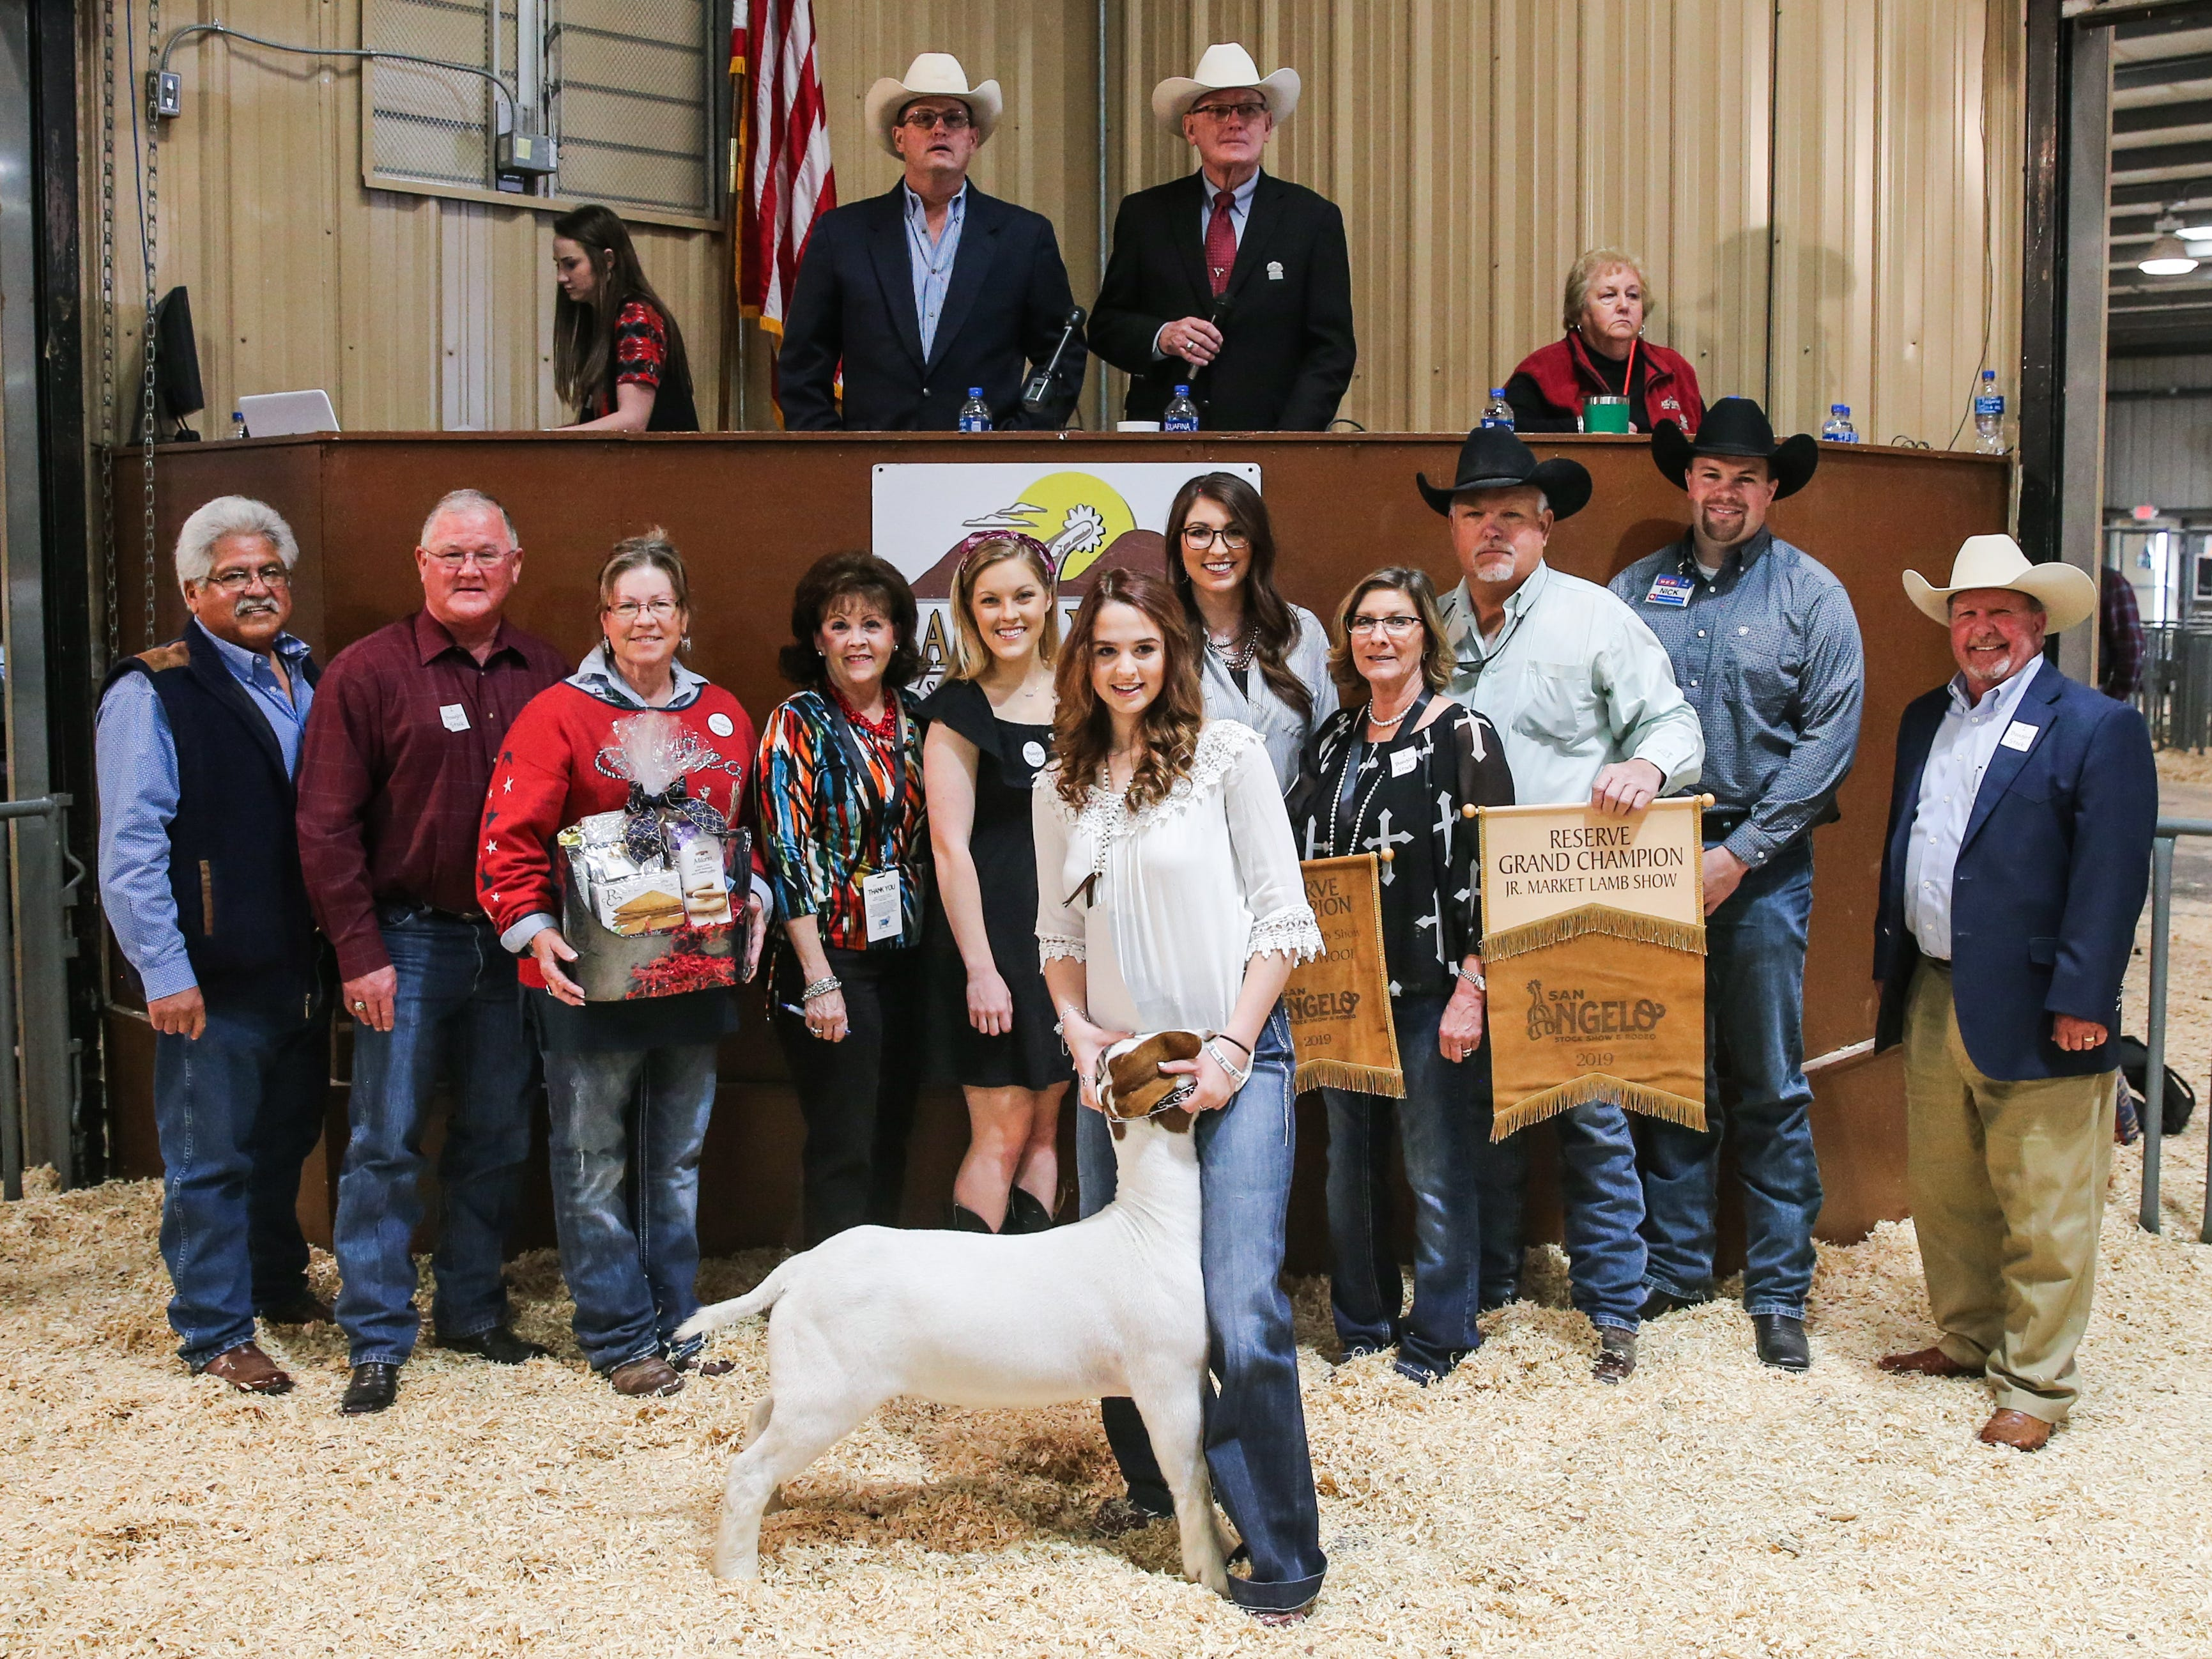 Reserve Grand Champion Goat exhibited by Maci Alexander of Anderson Shiro FFA, sold for $12,000.From left to right: Raymond Meza, Twin Mountain Fence Company; Lindy Jordan, First Financial Bank; Dawn Foster, No Step Ranch; Vicki Loso, 1st Community Credit Union; Caylan Gandy, Gandy Ink; Darcy Weishuhn, The Bank & Trust; Maci Alexander, exhibitor; Kathy Frey, Frey Show Goats; Doug Frey, Frey Show Goats; Nick George, H-E-B; Todd Price, Jim Bass Ford. Not pictured: Anonymous Buyer & Weatherby Ranch.